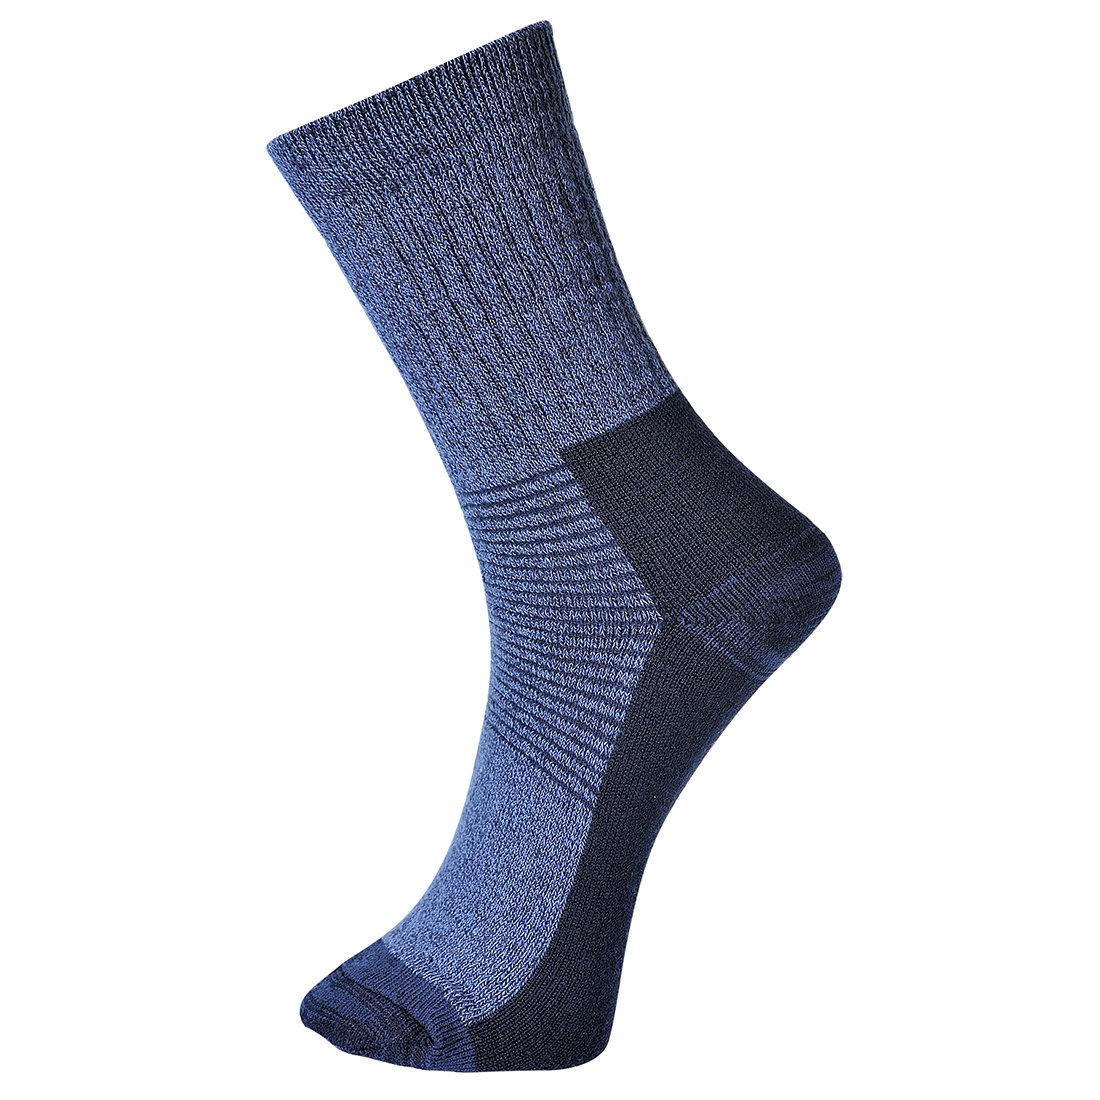 Redrok Workwear Centre Plymouth Thermal Sock - Blue